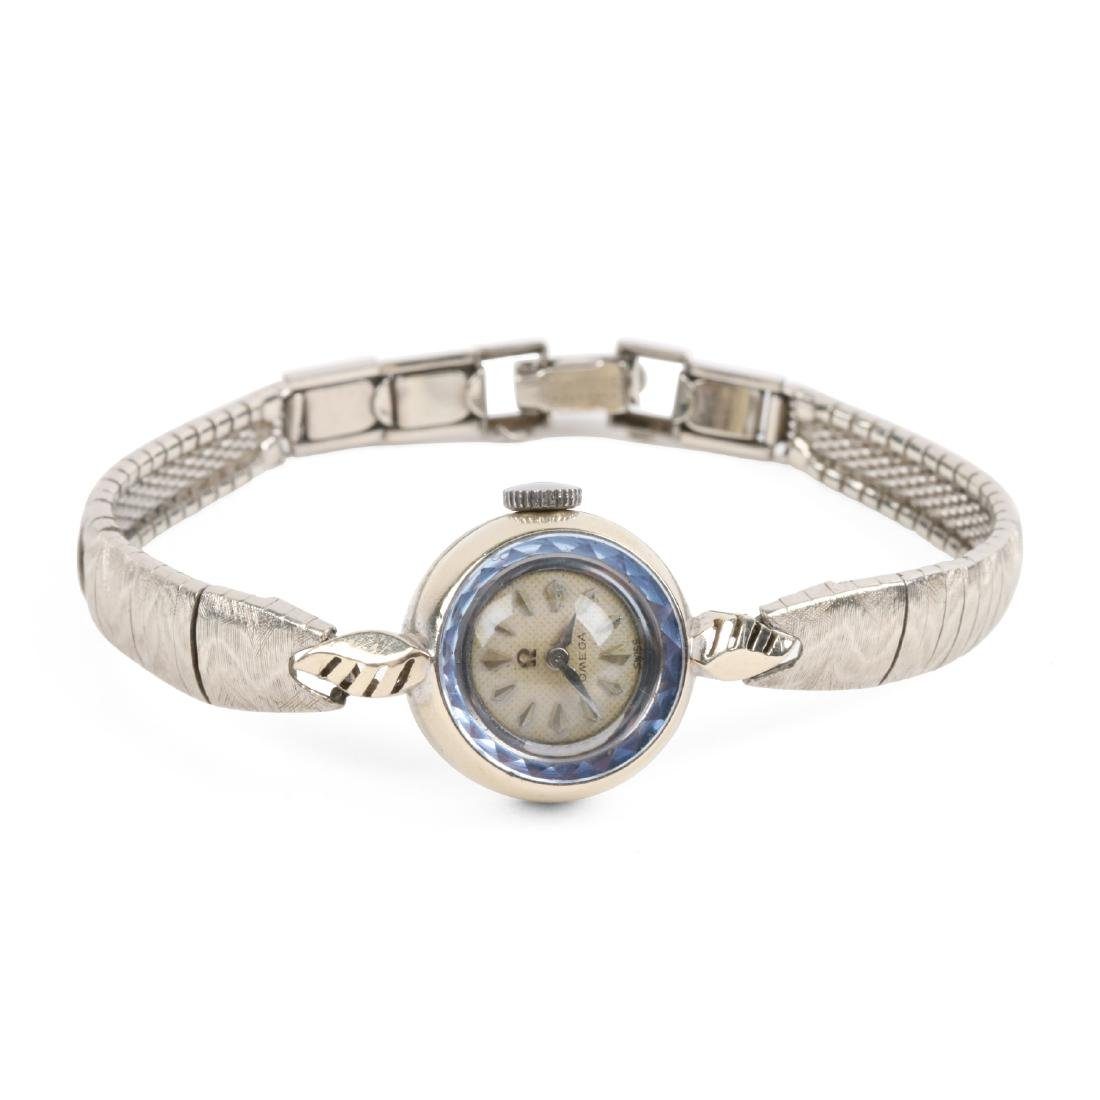 Omega, 14K Lady's Cocktail Watch